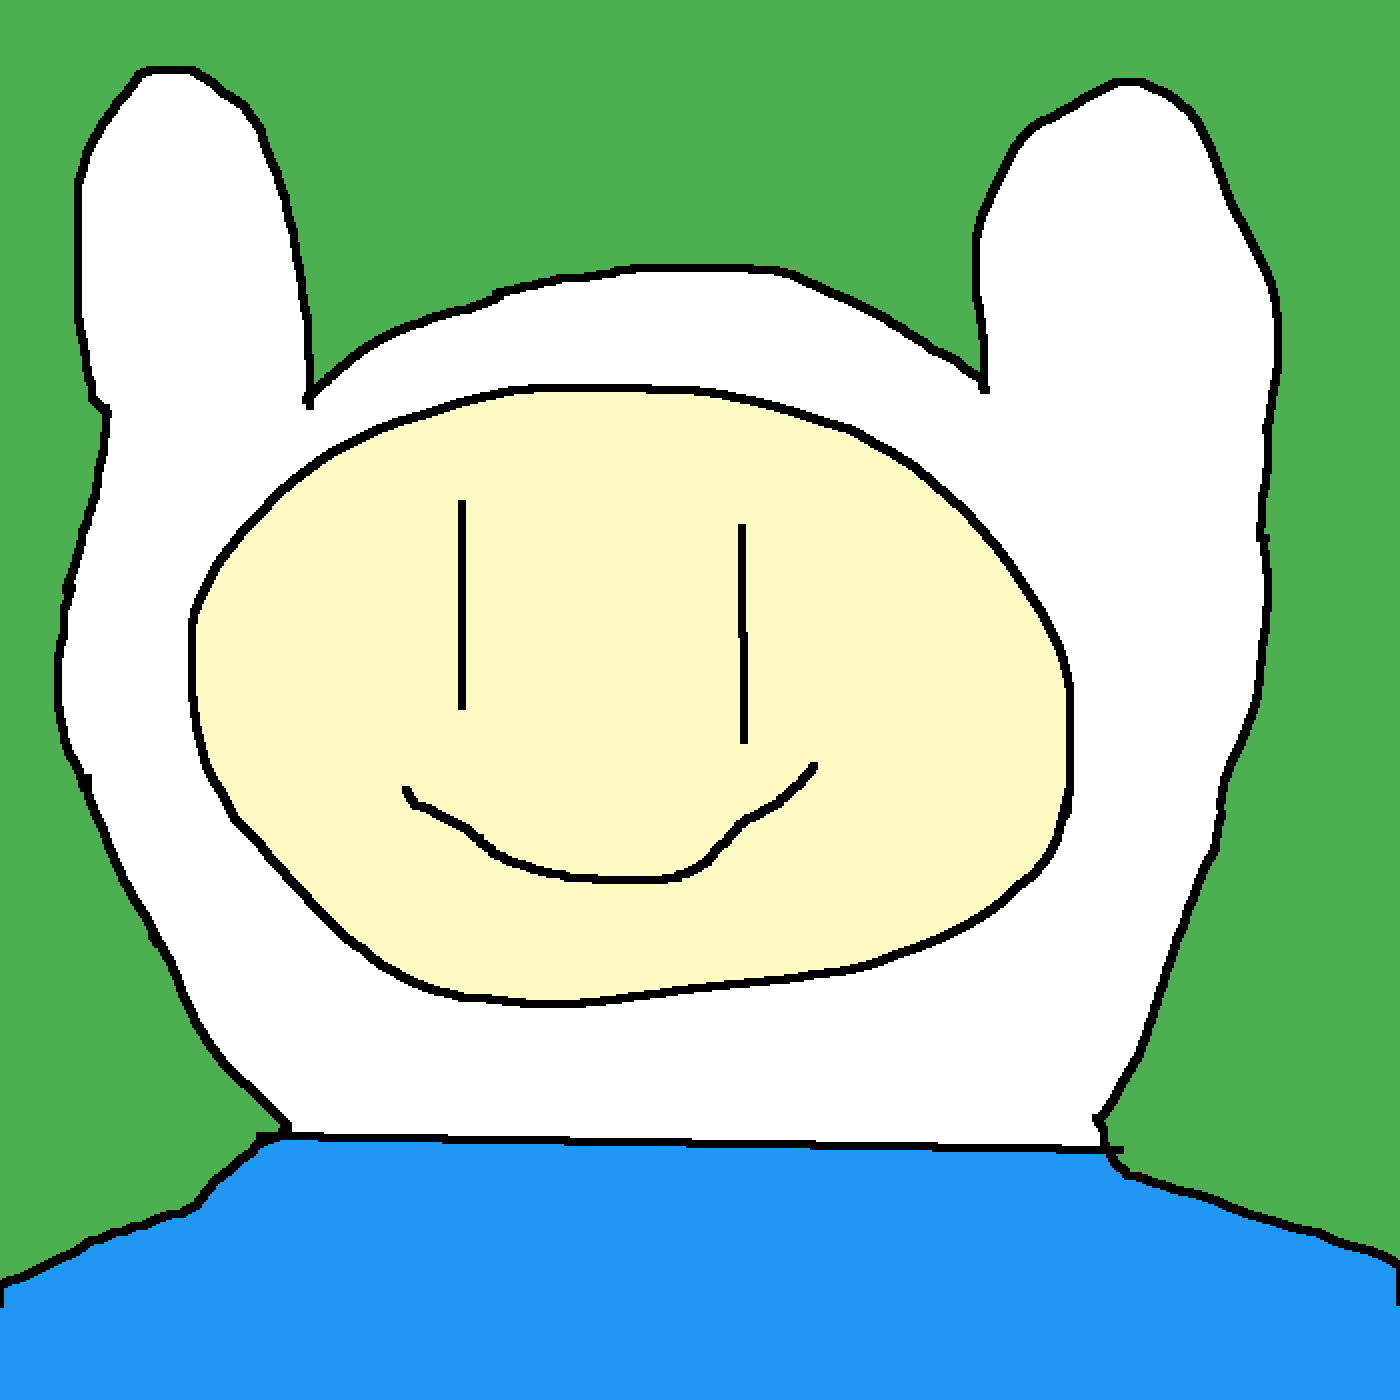 Finn the human by Mrbone101